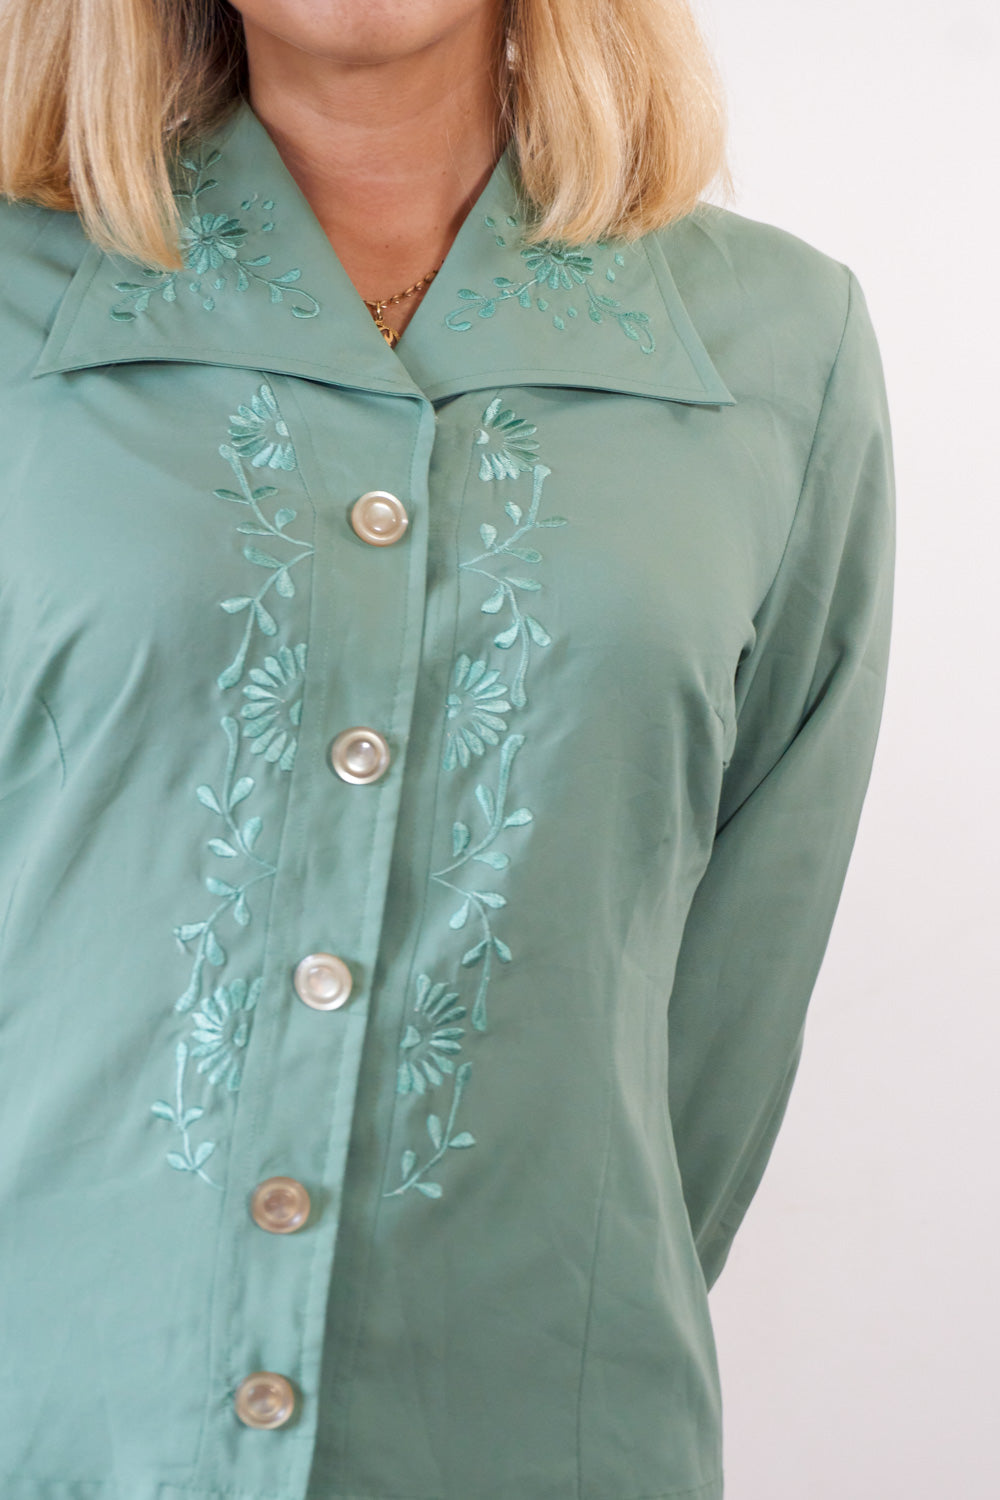 Zoey - 70's Blouse in Green with Floral Embroidered Detail - Staying Alive Vintage